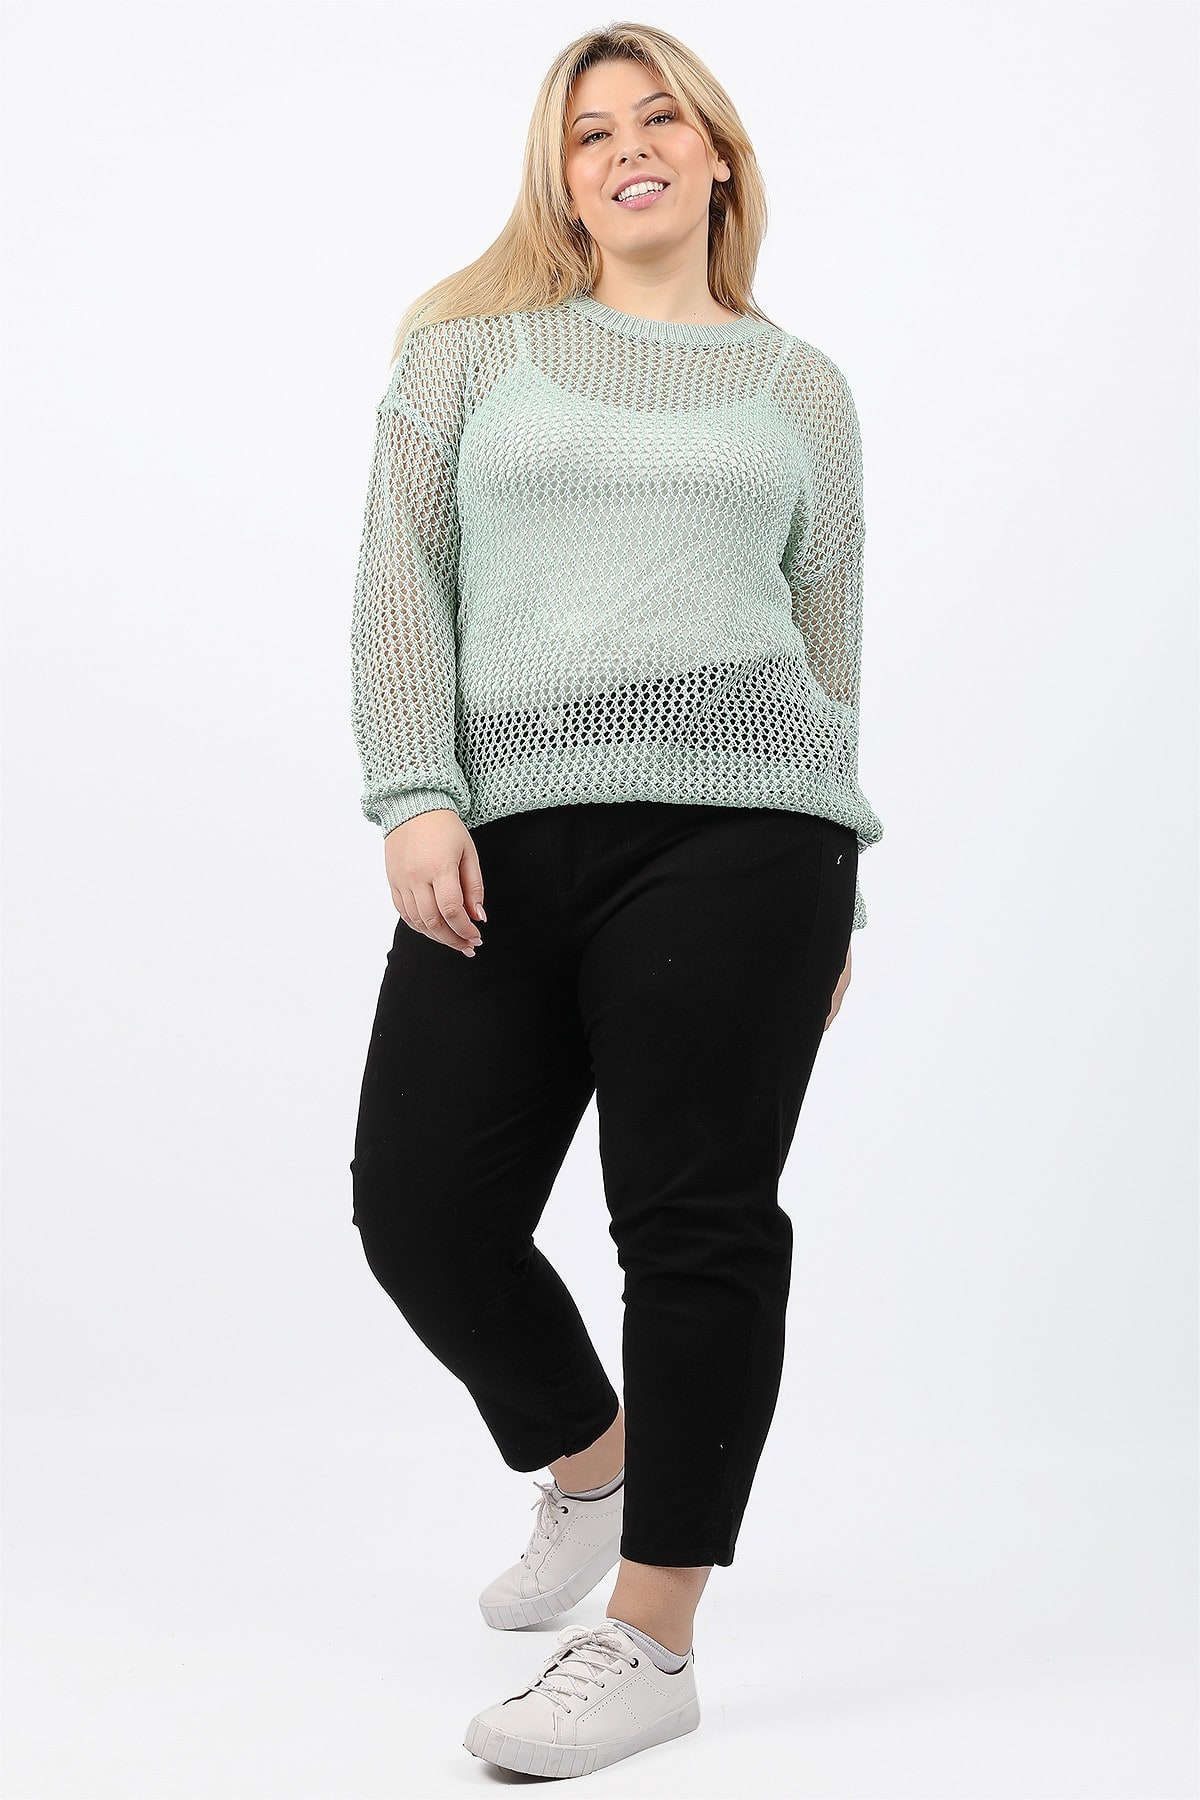 Knit perforated trimmed blouse